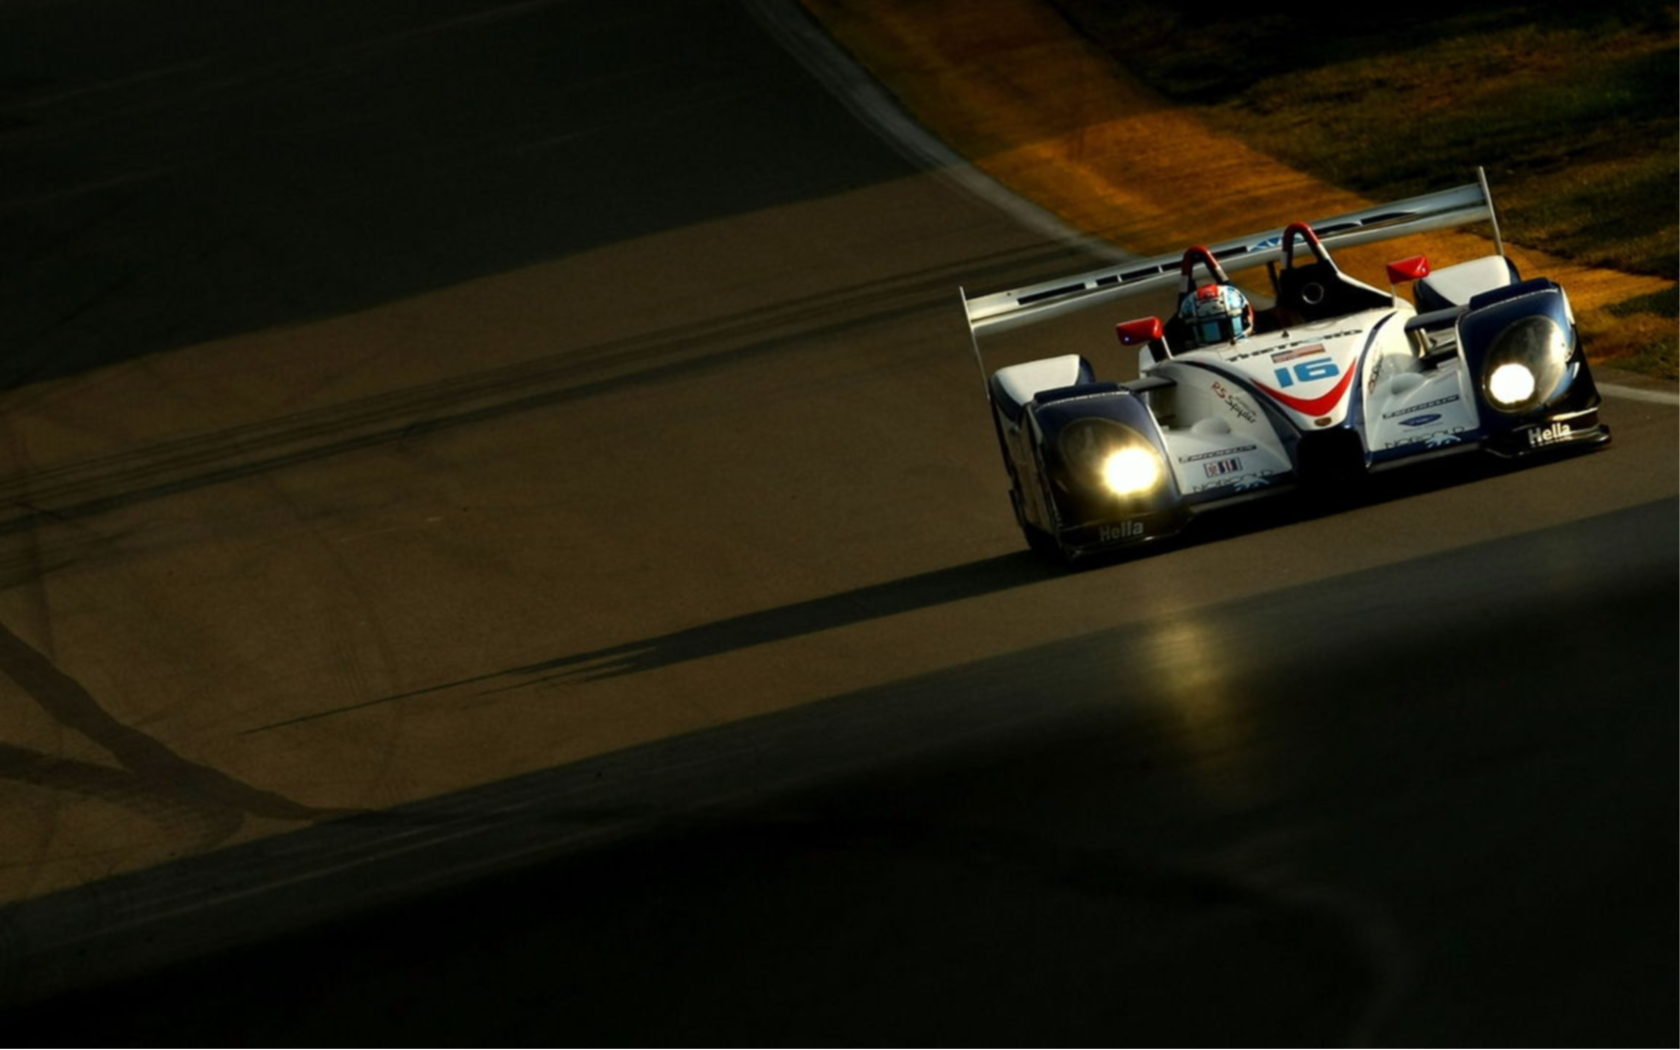 Racing wallpaper and background image 1680x1050 id - Racing cars wallpapers for mobile ...